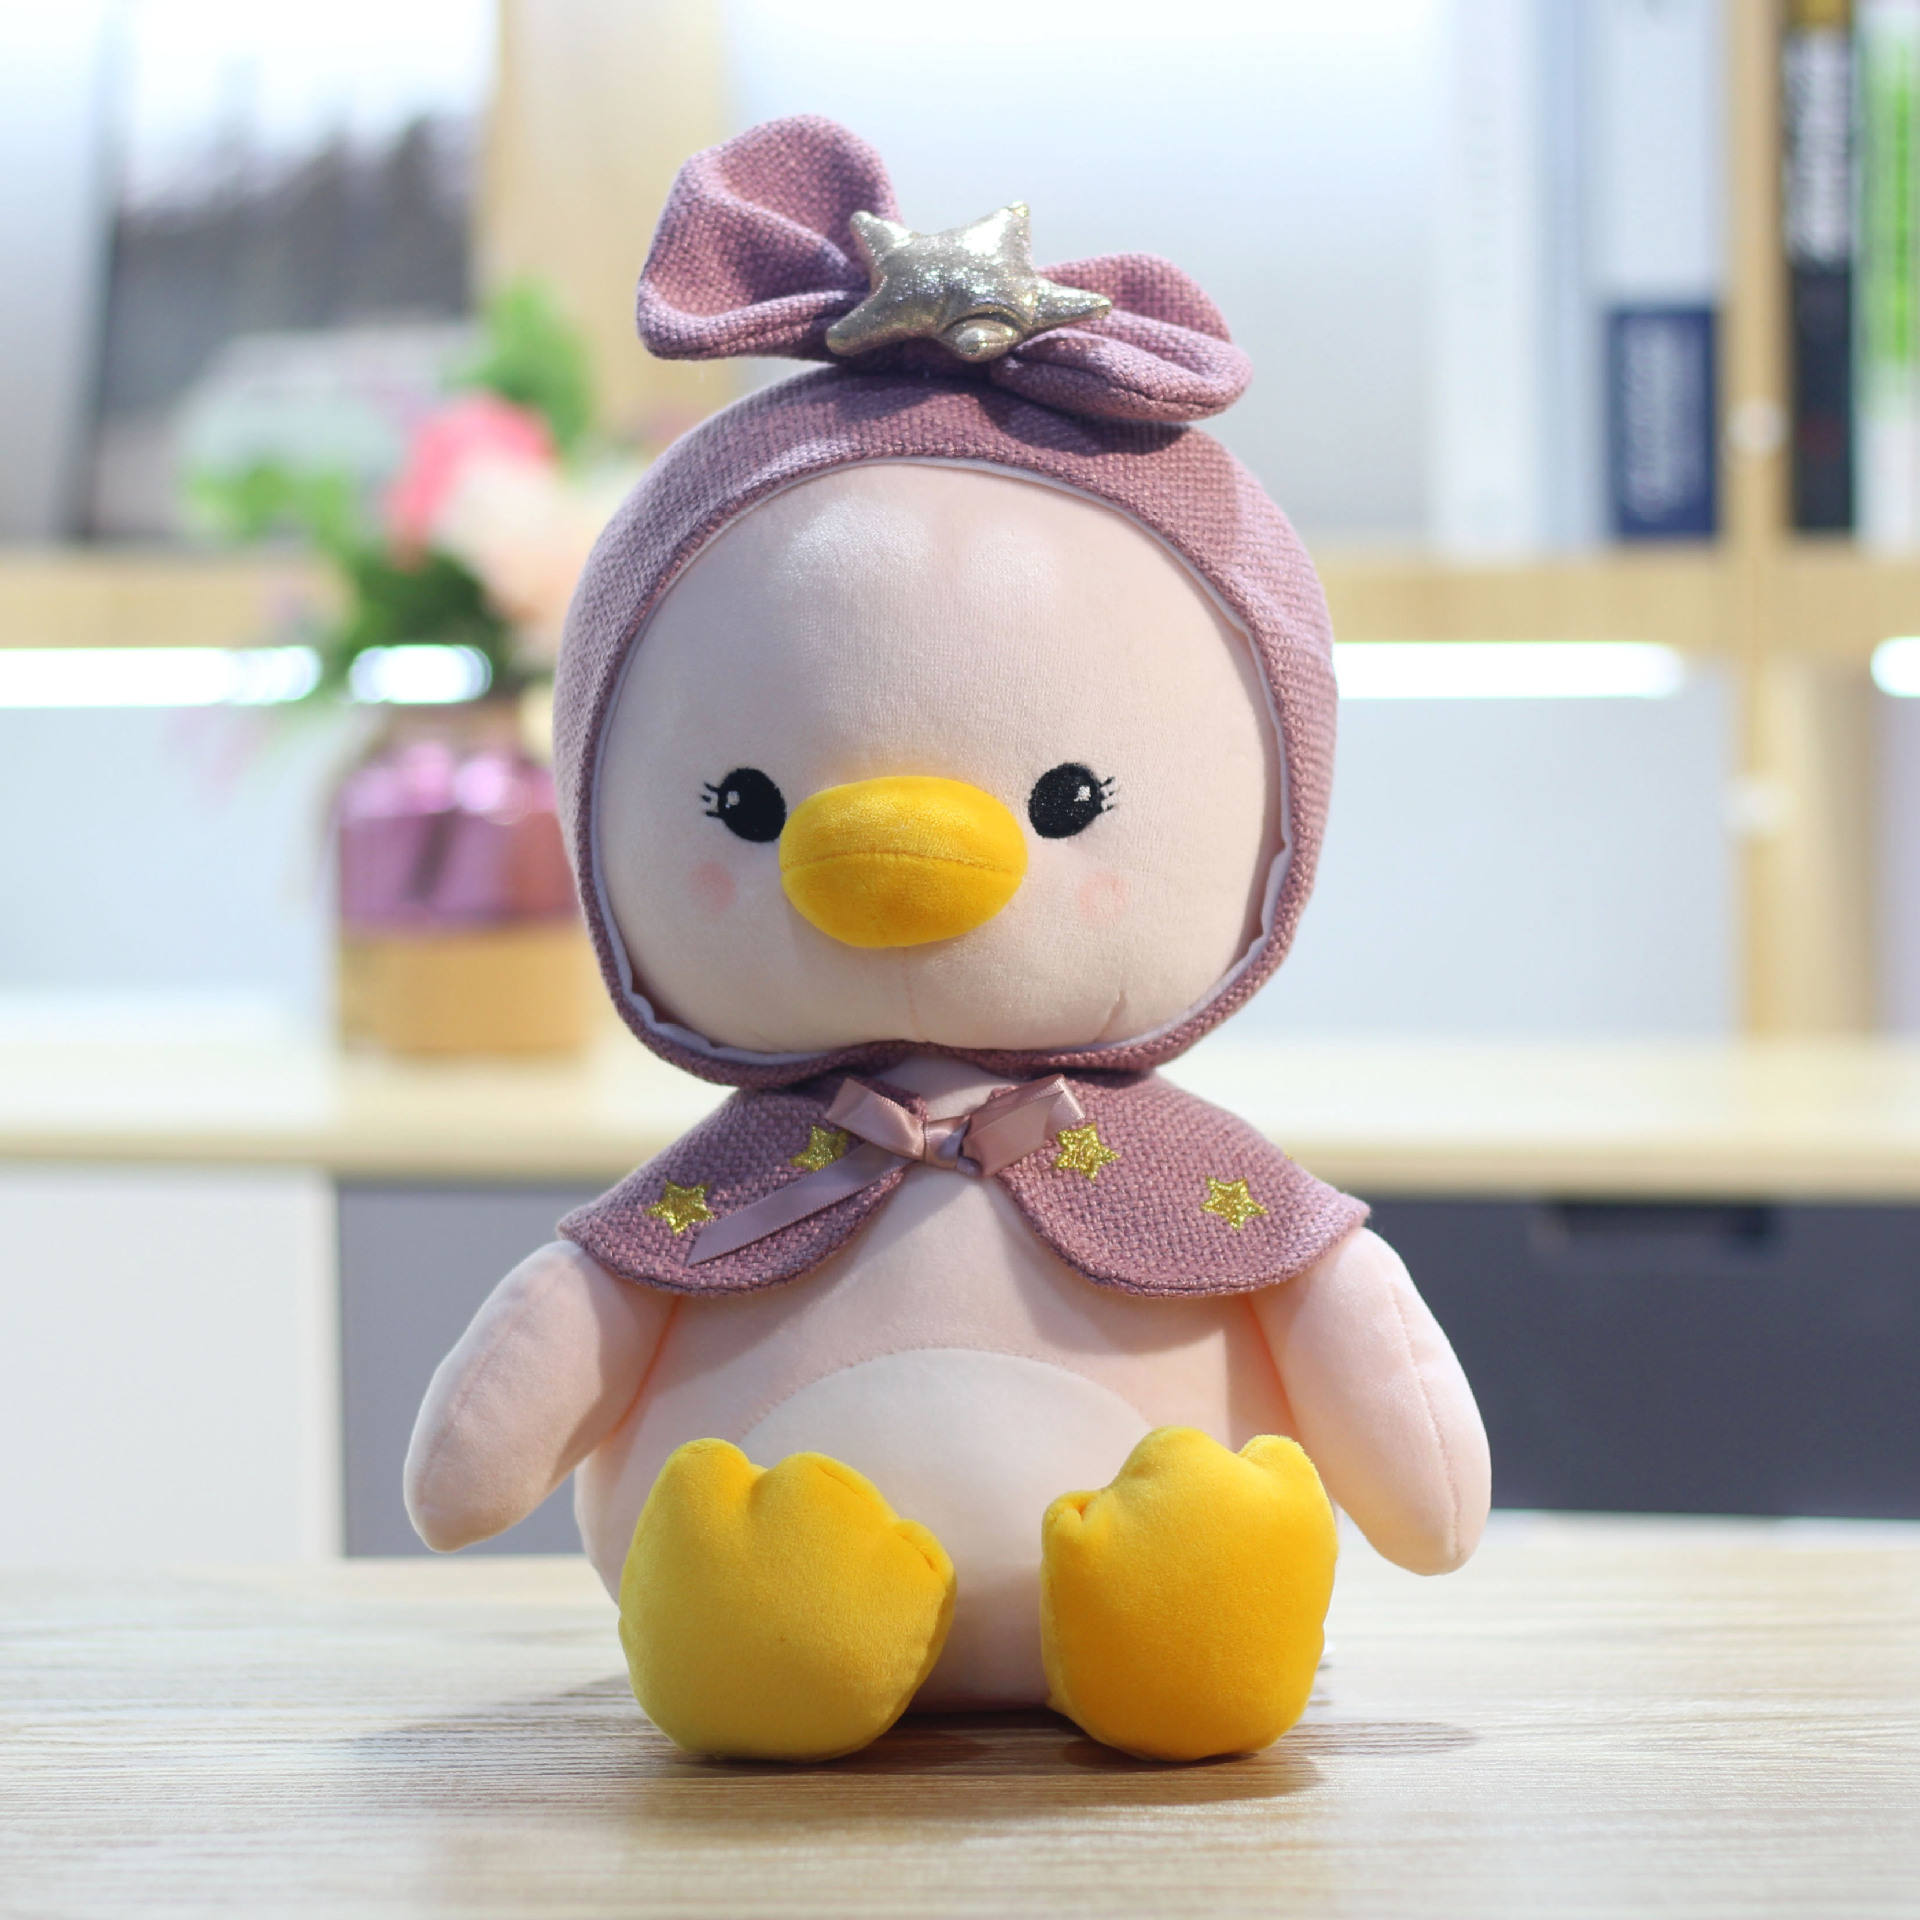 Hot Sale Adorable Cartoon Duck Plush Toys Custom Animal Plush Stuffed Toy Soft Kawaii Duck Doll With a Star Shawl